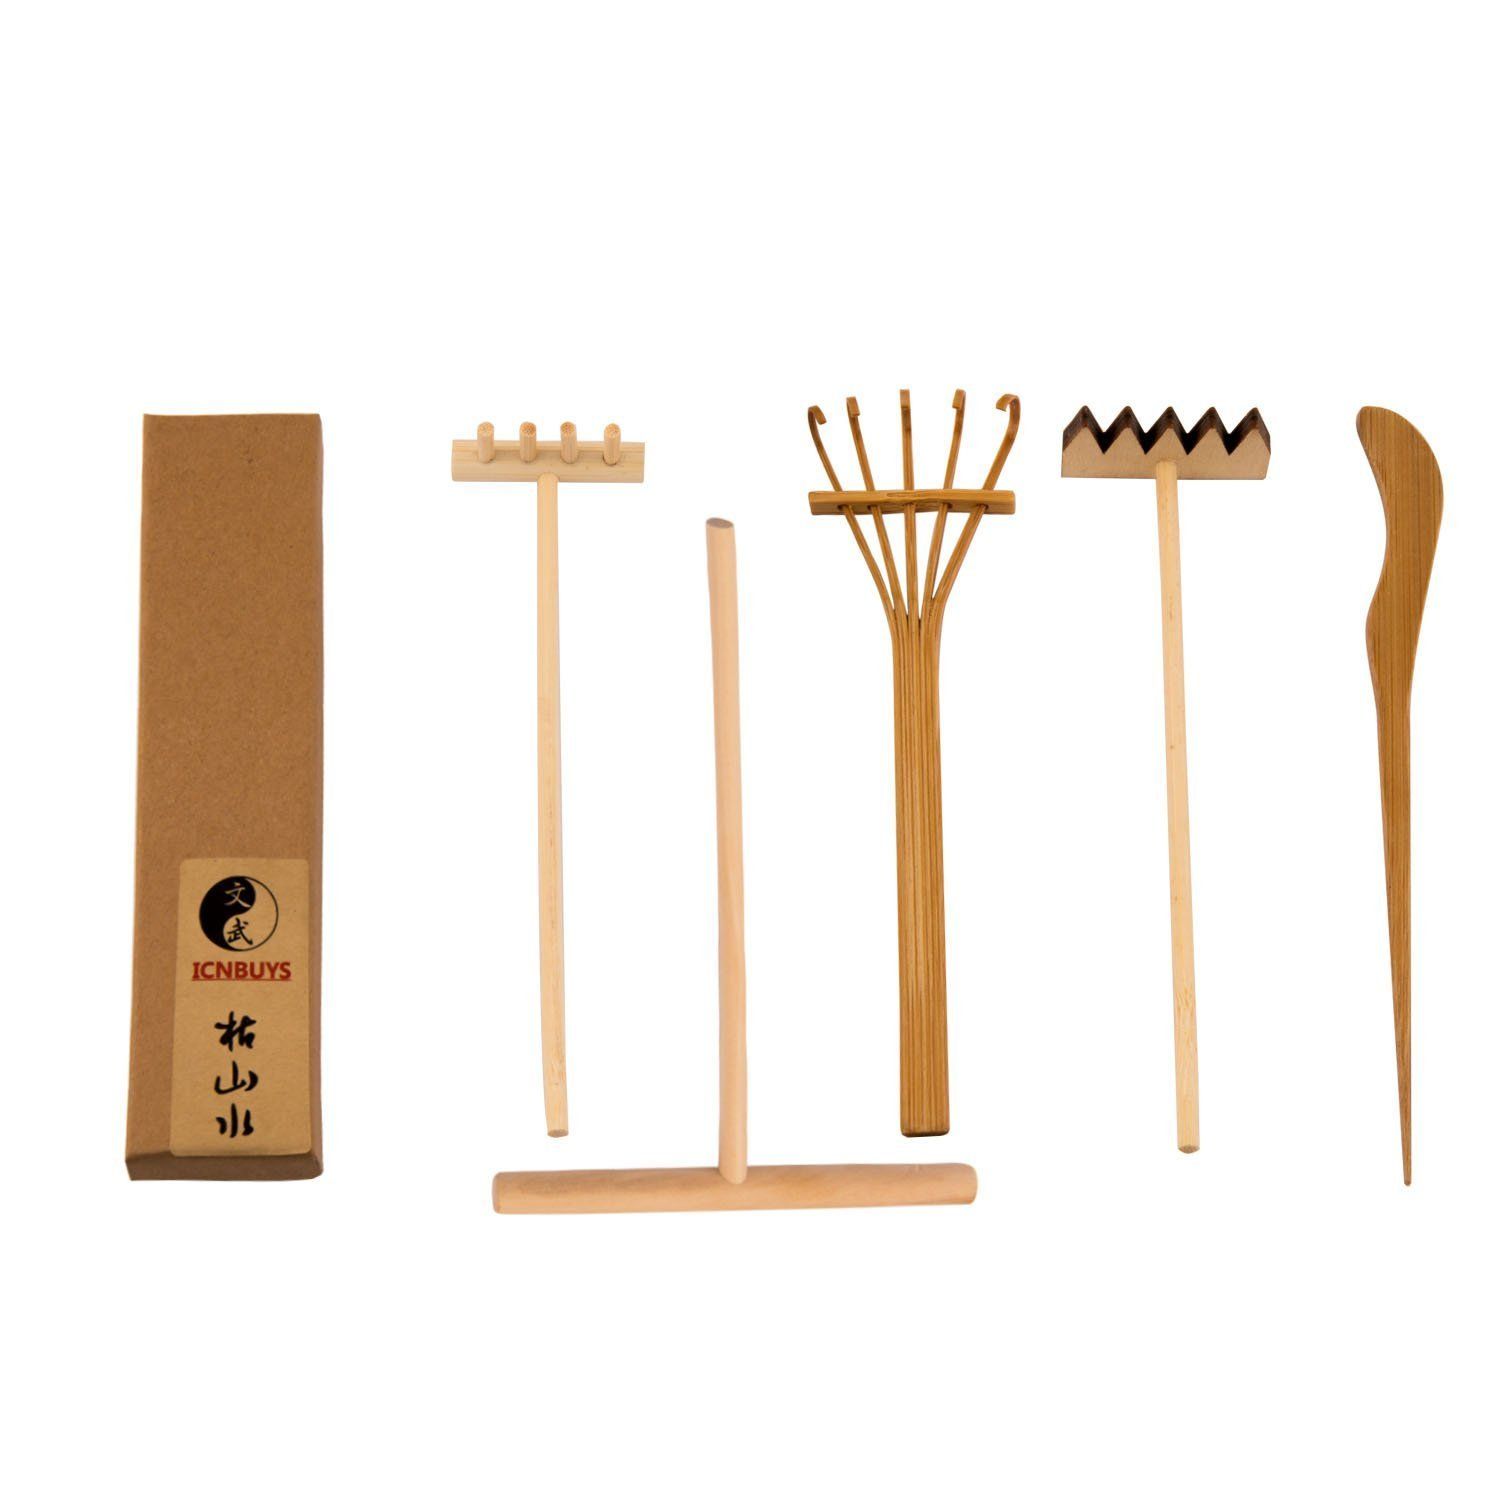 ICNBUYS Professional Mini Zen Garden Rake Tools Set three rakes One Bamboo Drawing Pen One Pushing Sand Pen